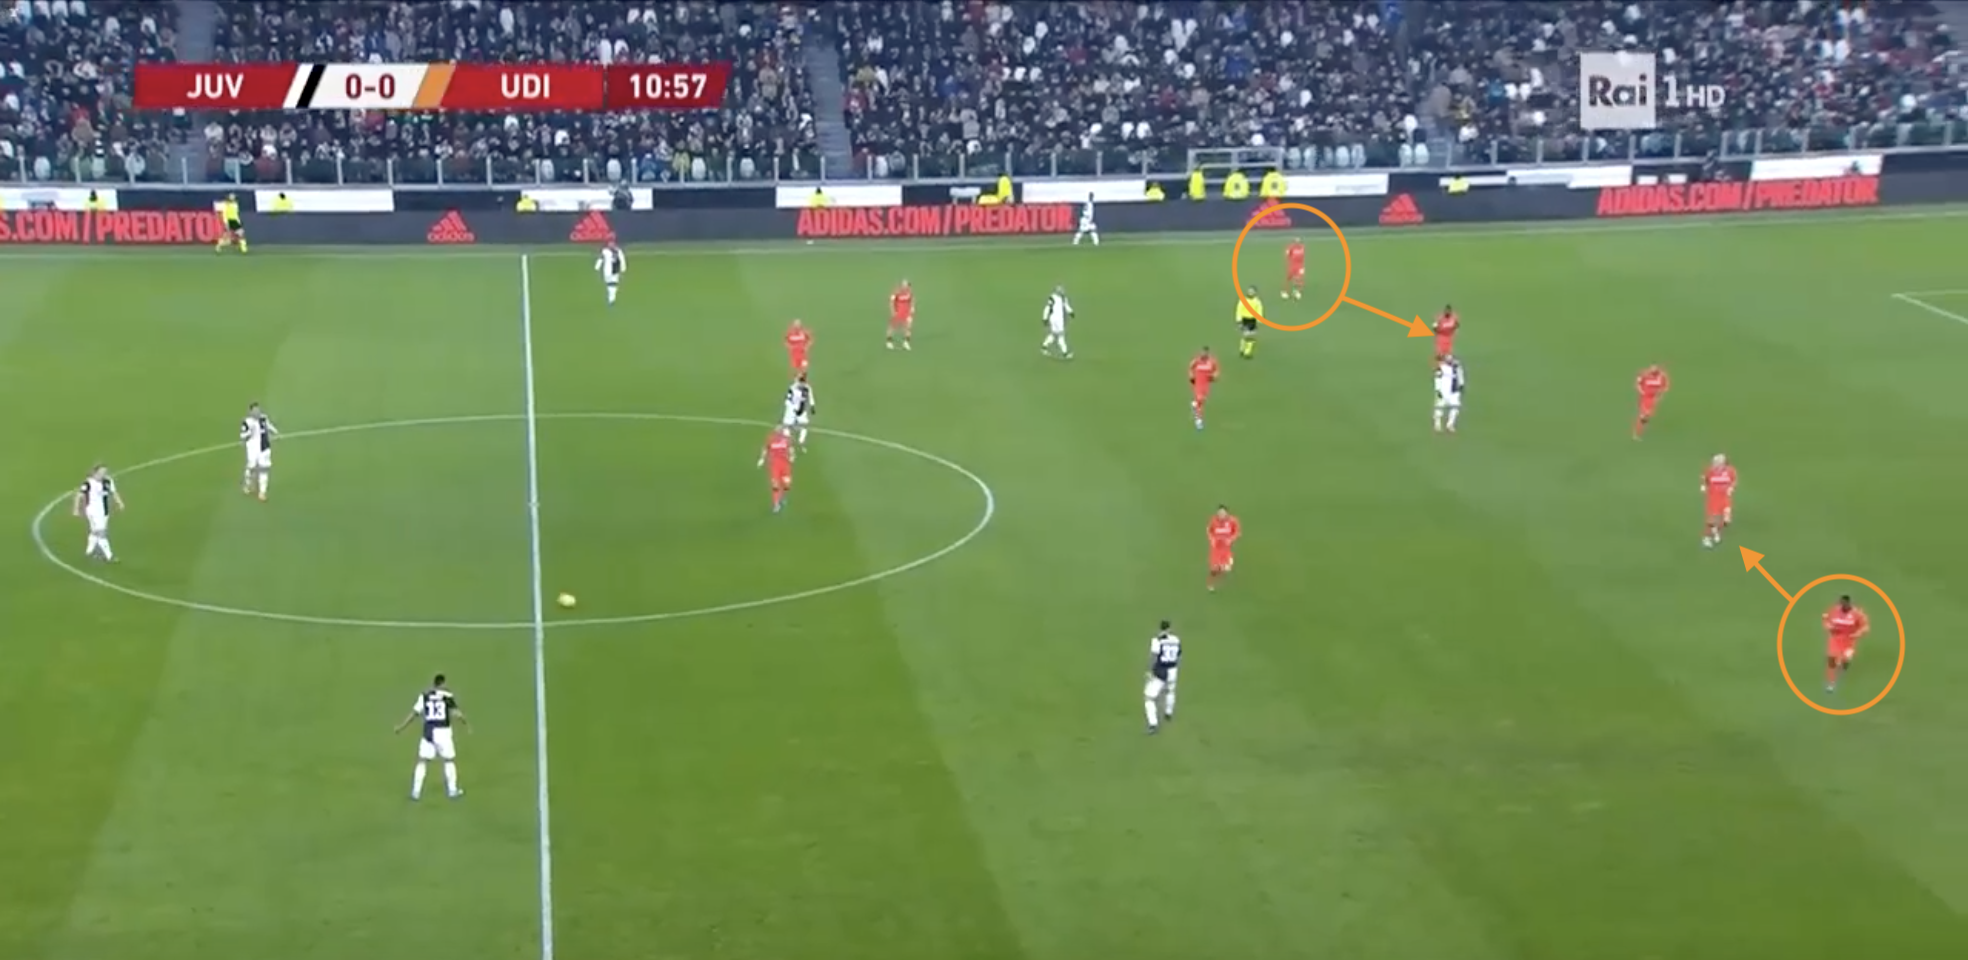 Coppa Italia 2019/20: Juventus vs Udinese - tactical analysis tactics